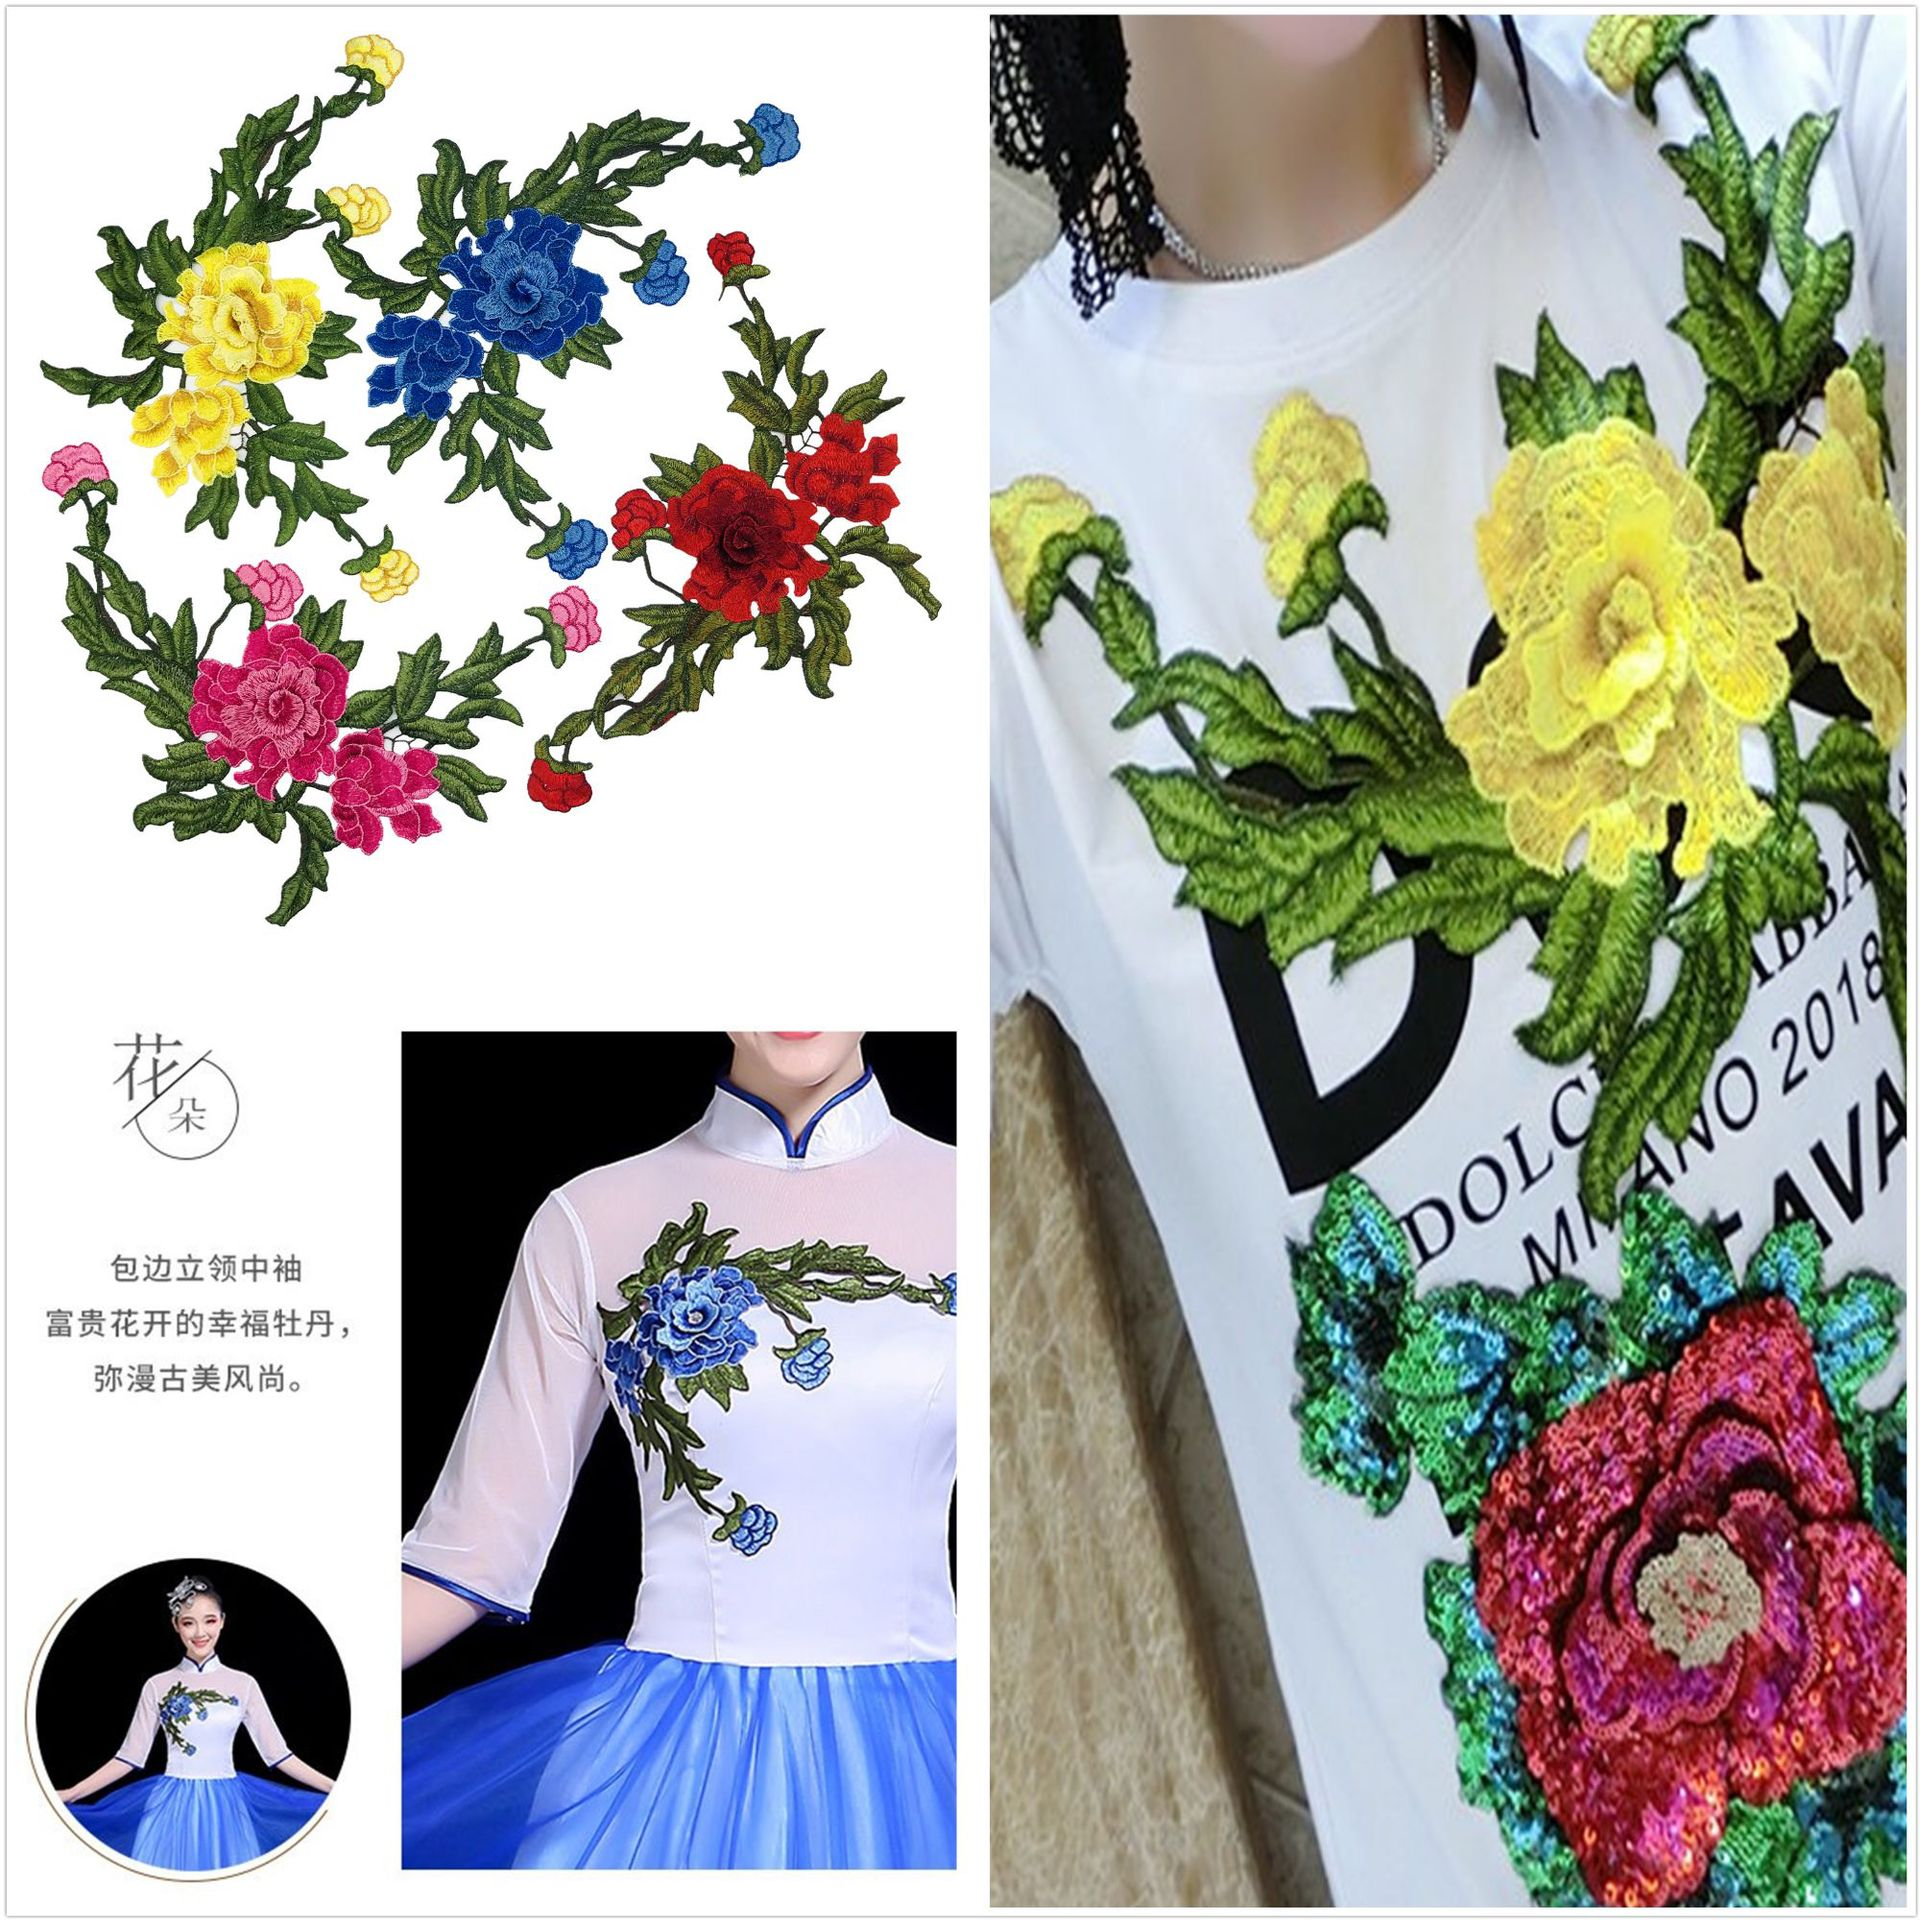 2019 New Fashion DIY Applique Embroidery Applique Costume Decoration Dimensional Patch